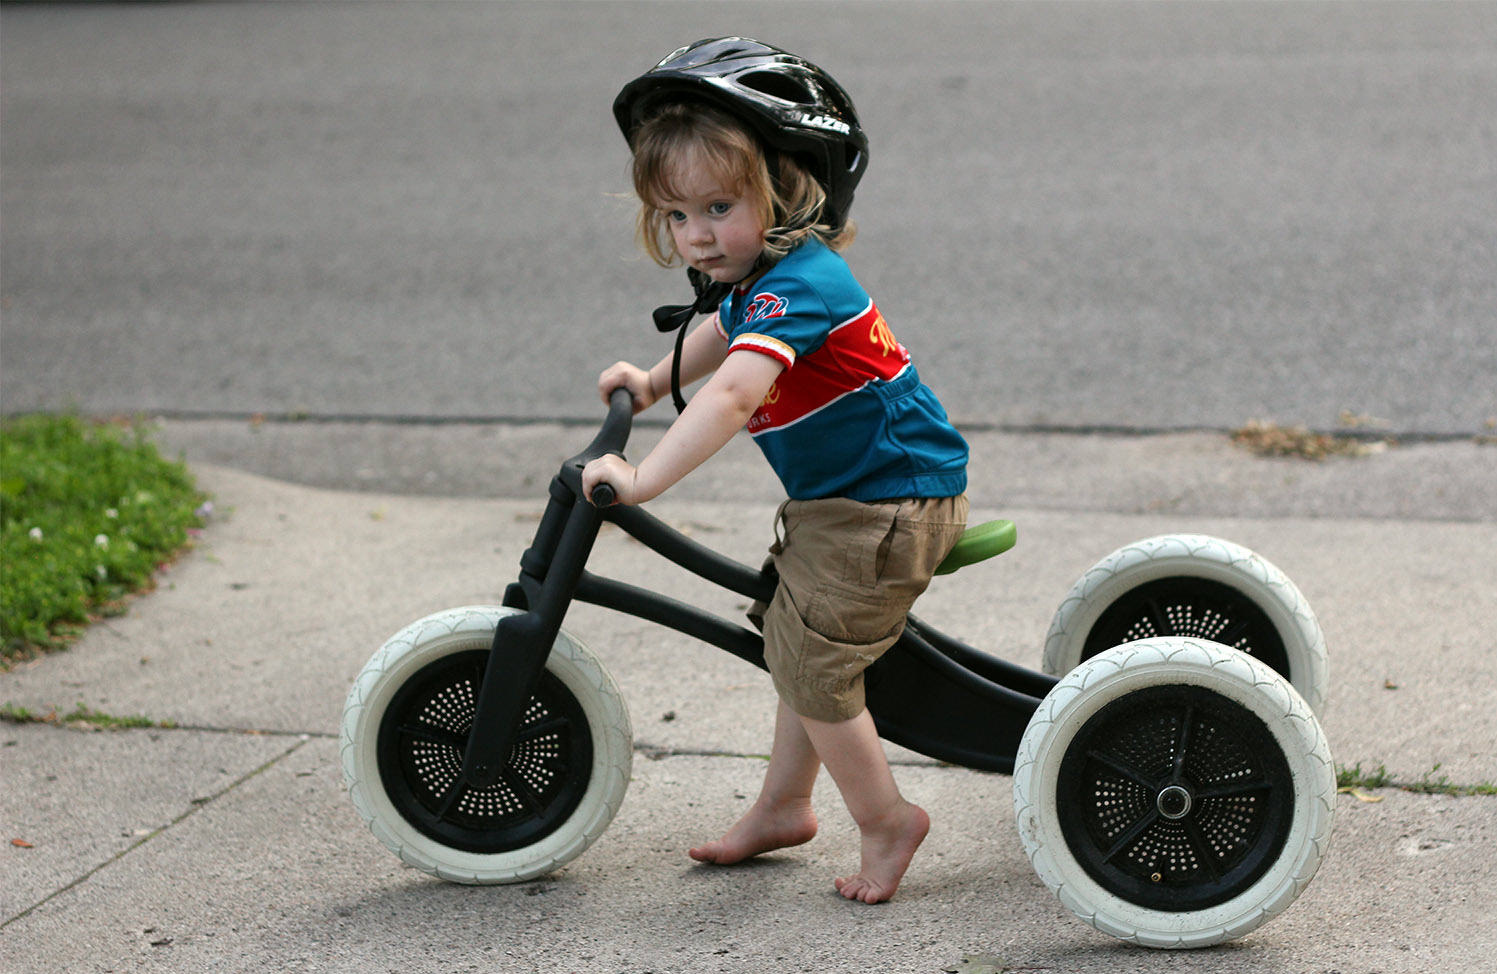 Bikes For Tykes The Spokesman Review